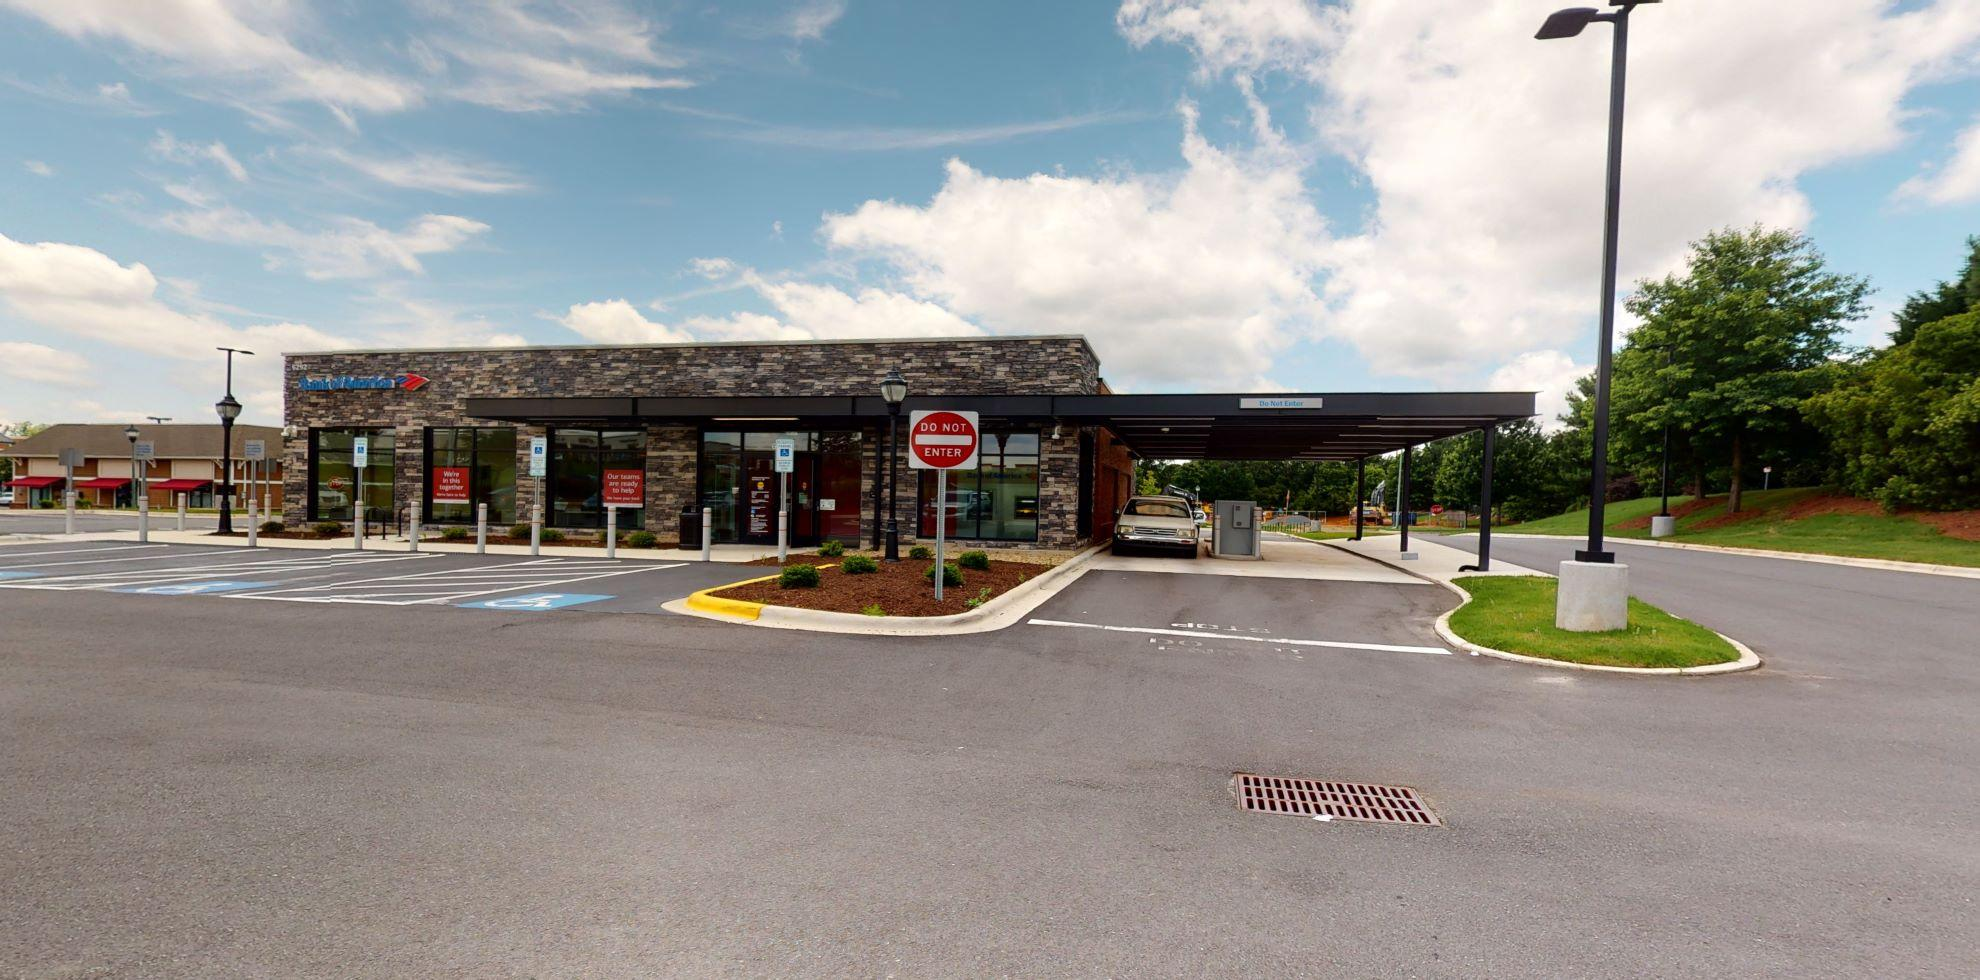 Bank of America financial center with drive-thru ATM | 6292 Carolina Commons Dr, Indian Land, SC 29707